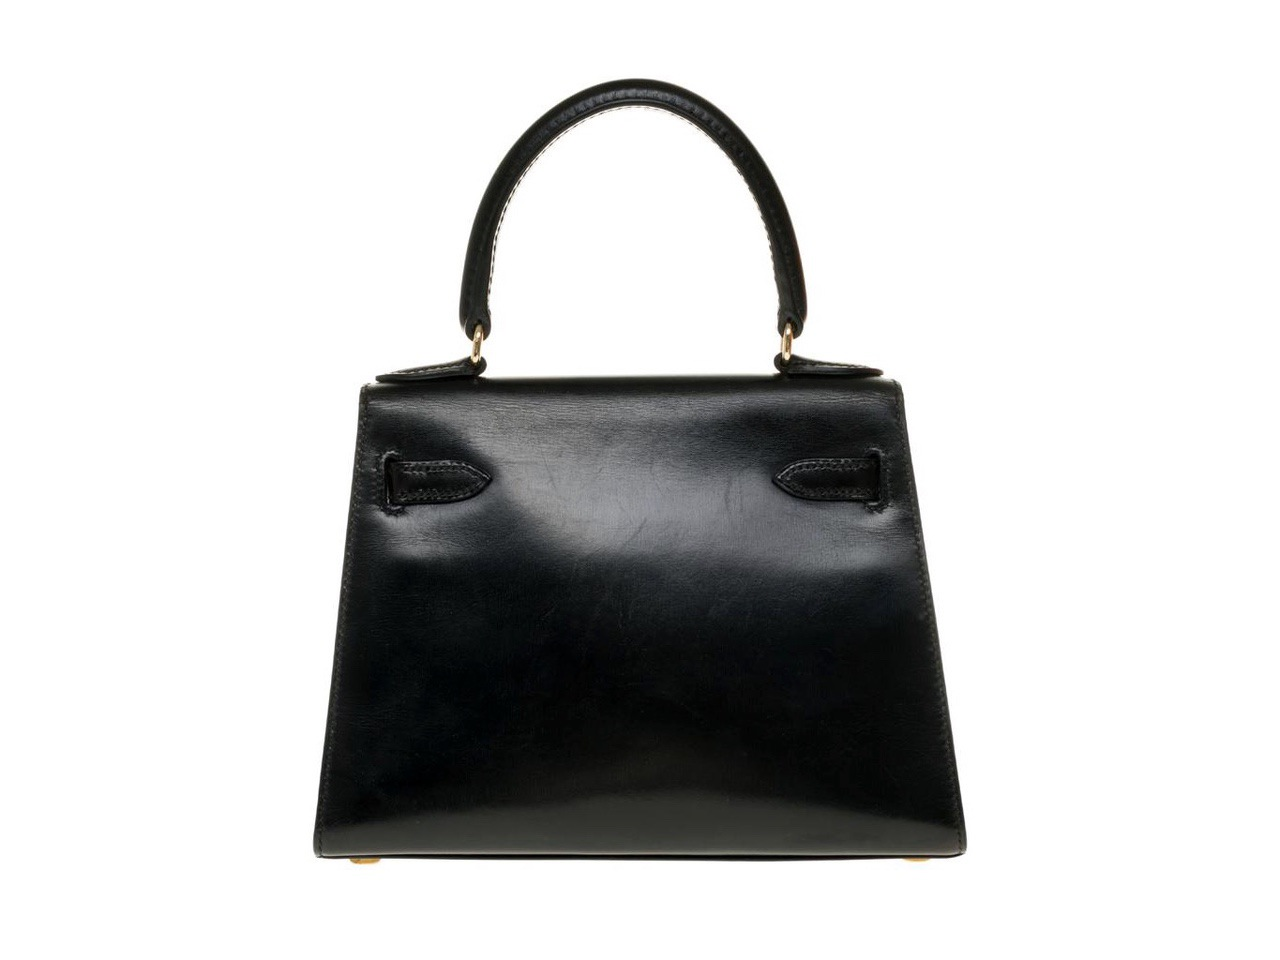 Hermès-Mini-Kelly-20-Black-1-1